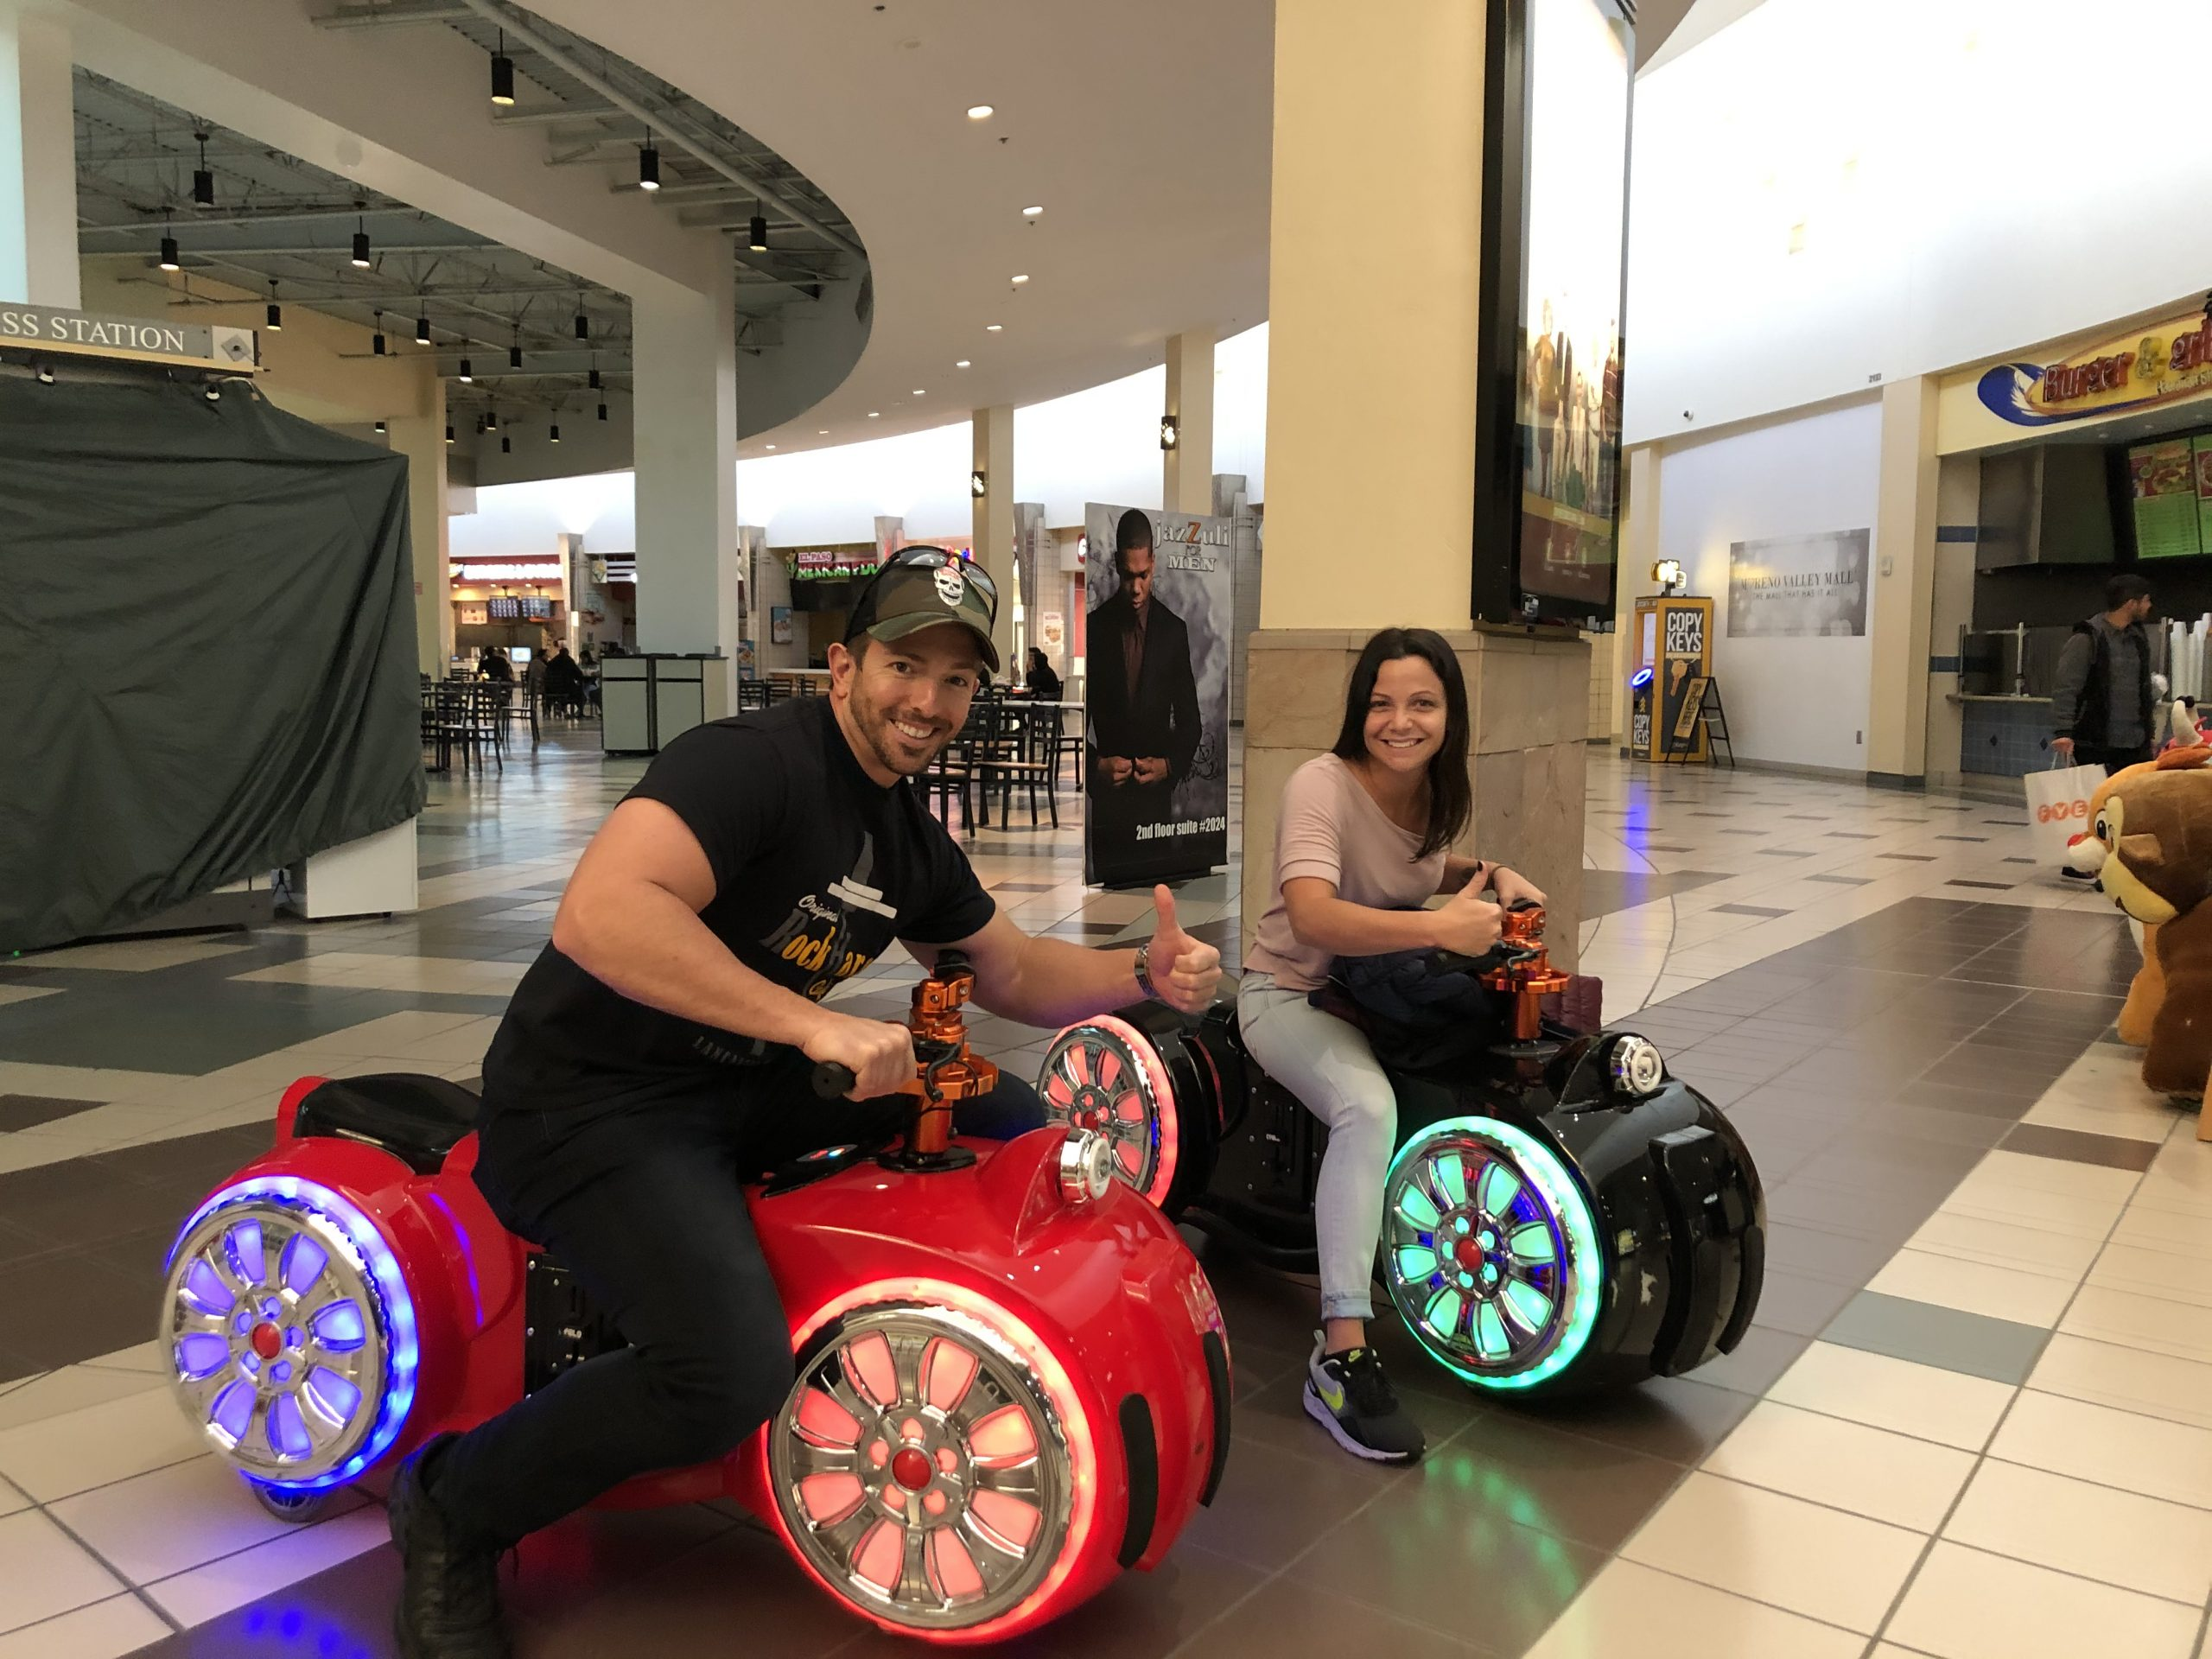 Cycledrag Drag Racing in The Mall